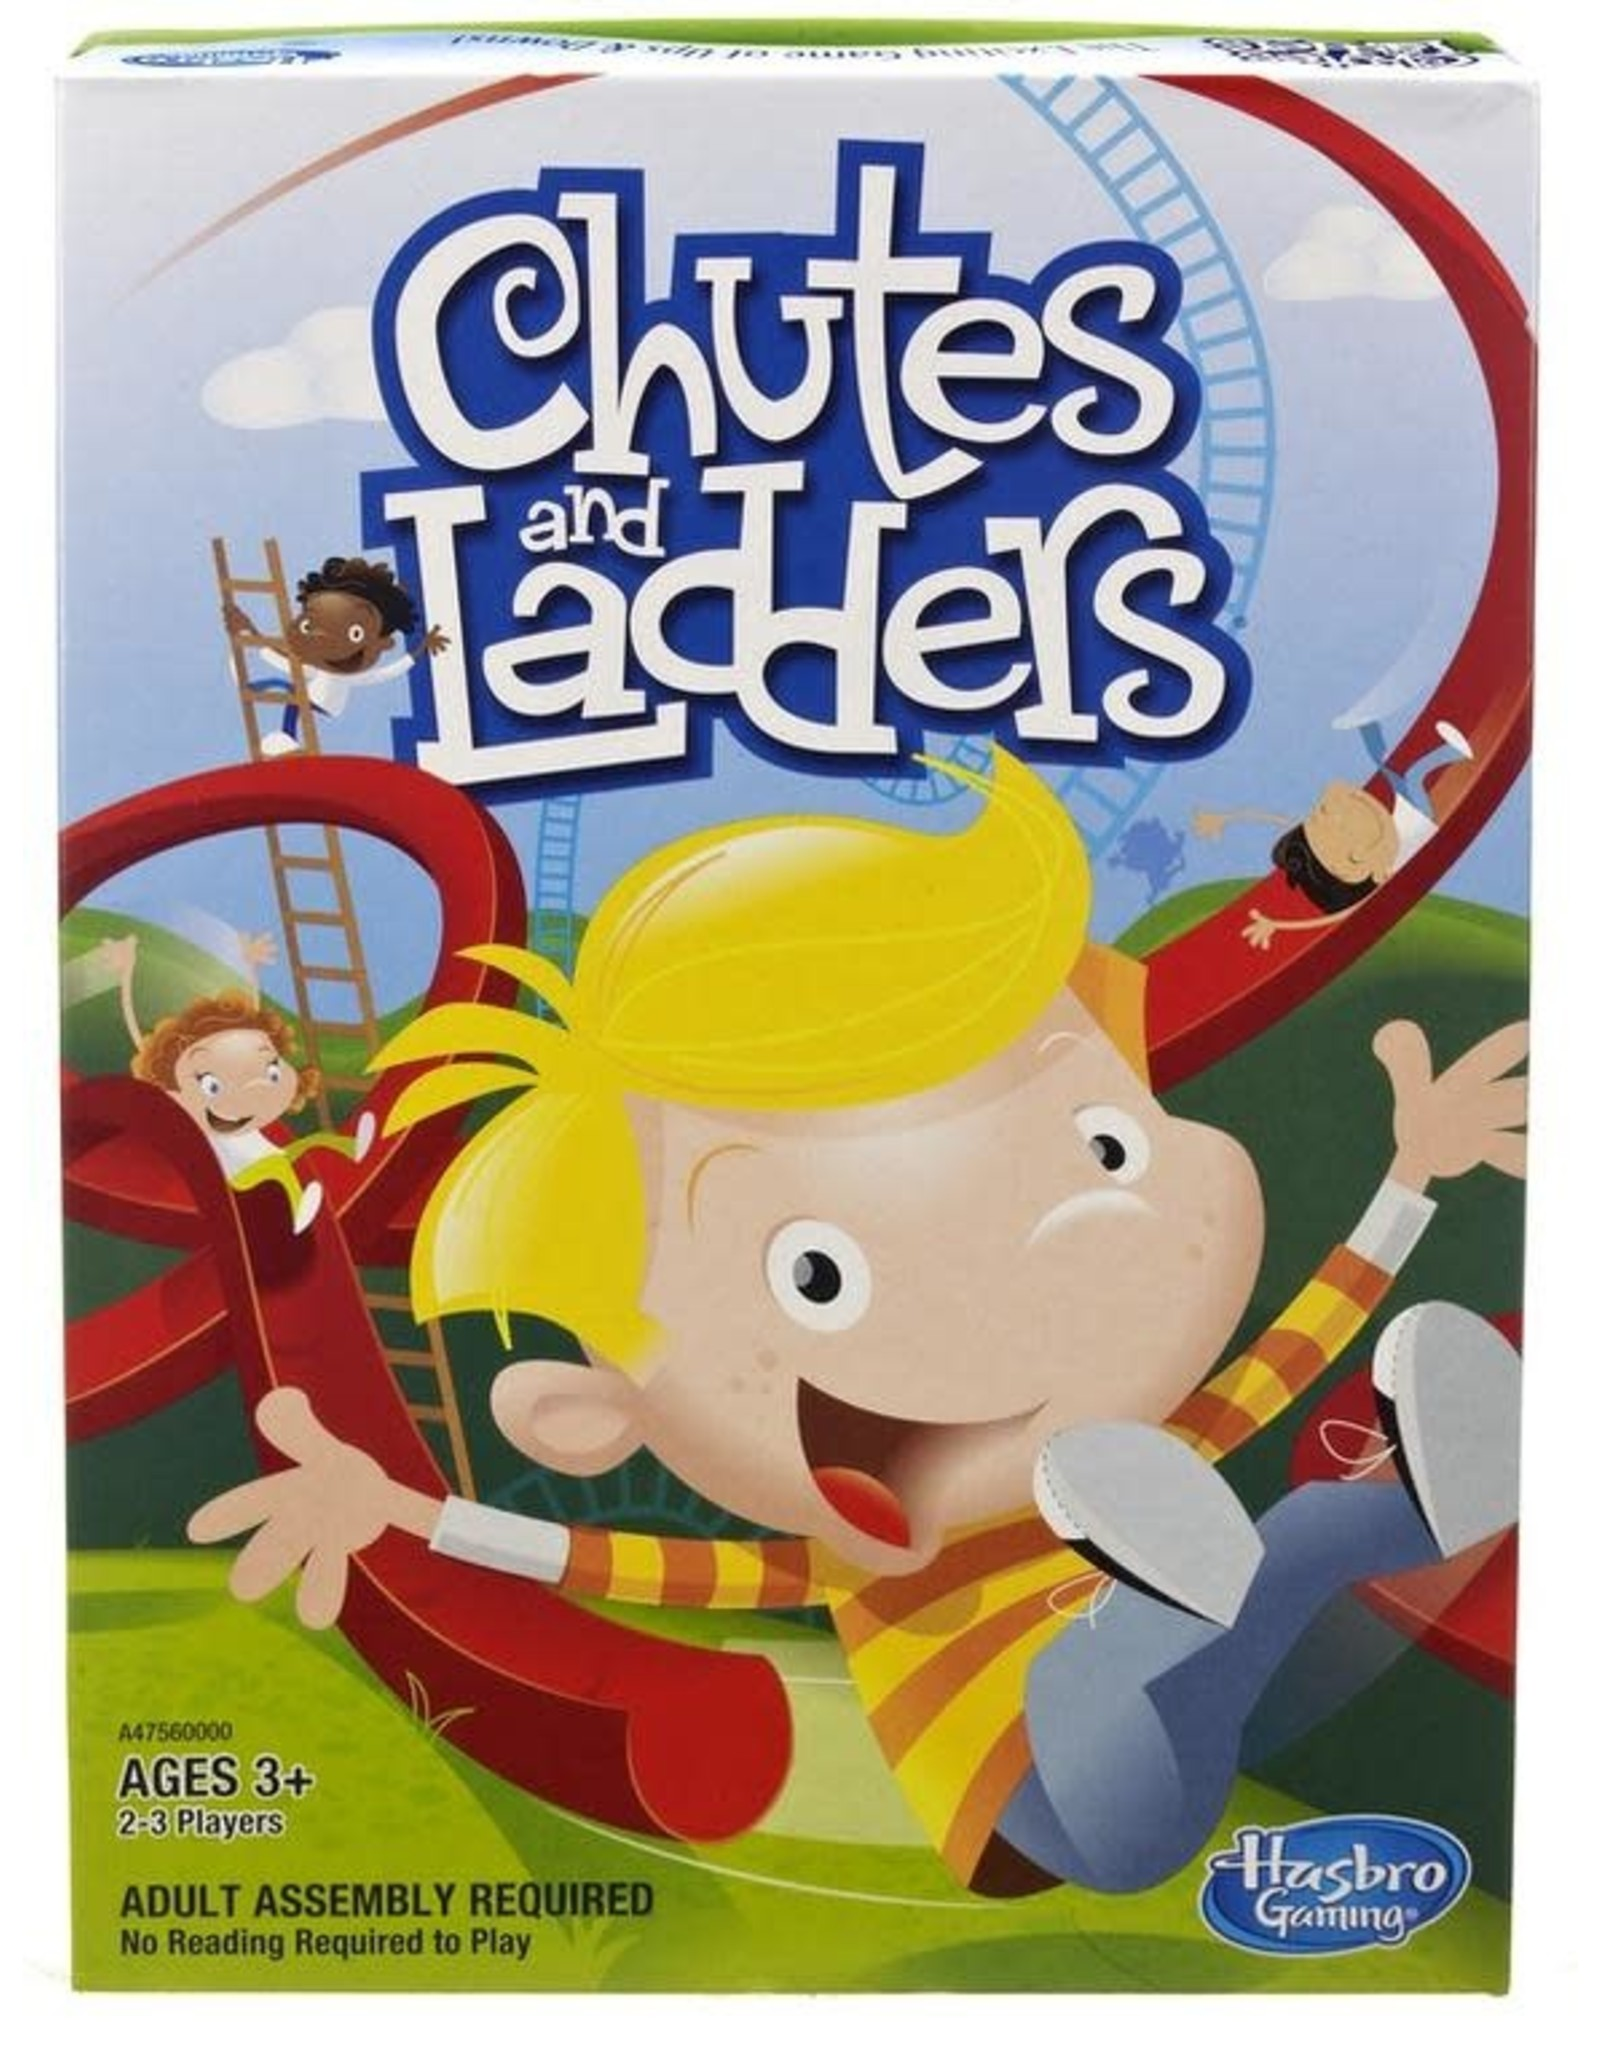 Hasbro Gaming Chutes and Ladders Classic